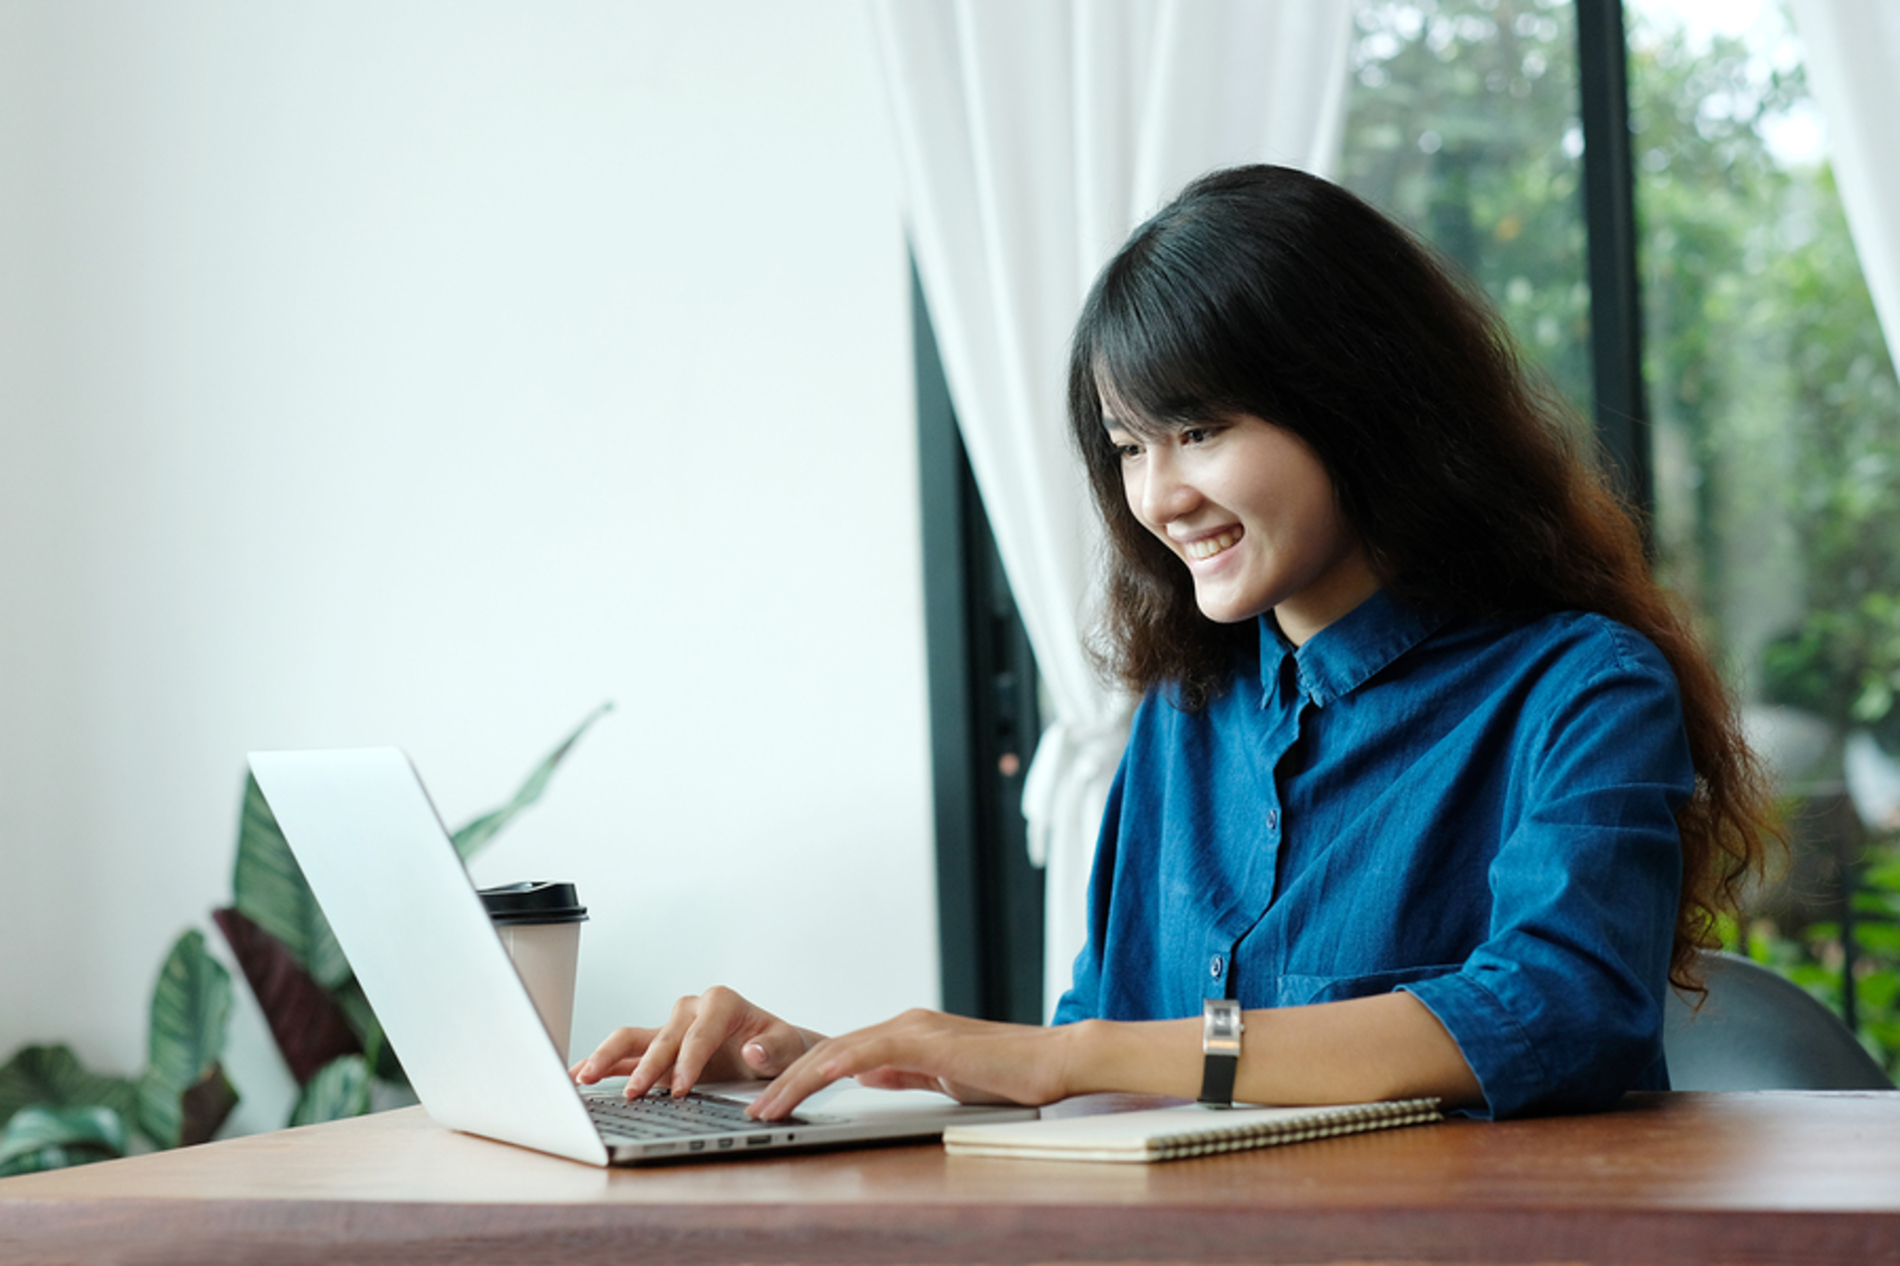 Happy woman typing on a laptop computer.